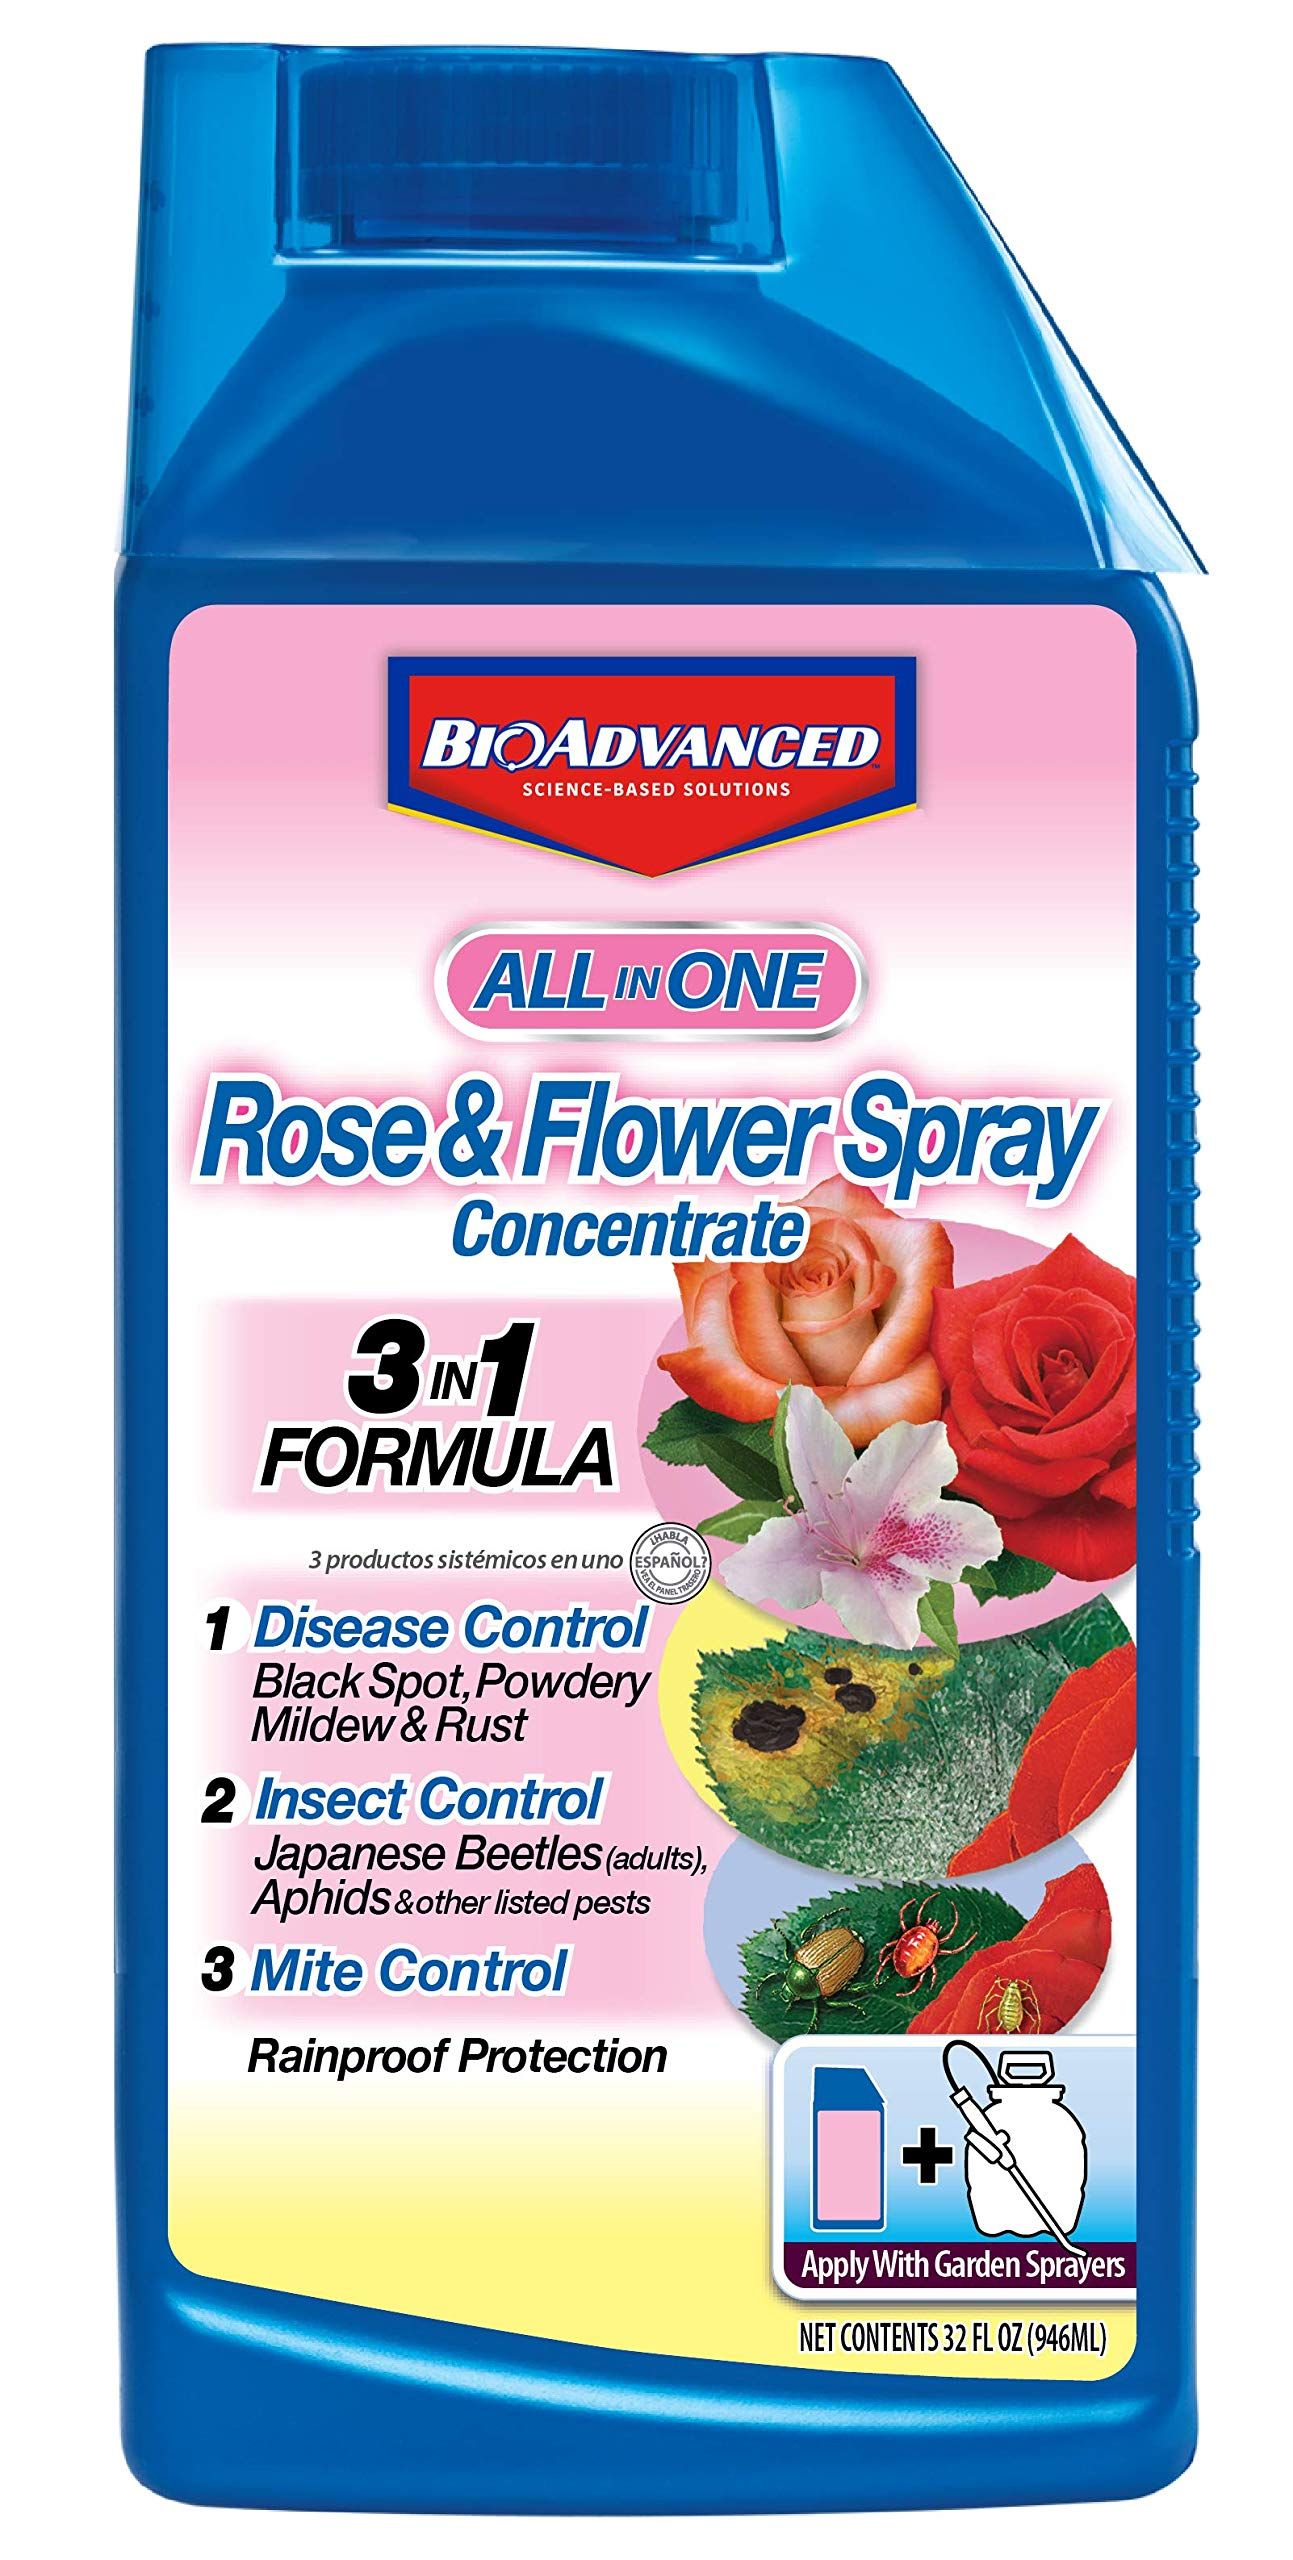 BioAdvanced 100532506 Bayer All in One Rose and Flower Care Spray Concentrate, 32 oz, White